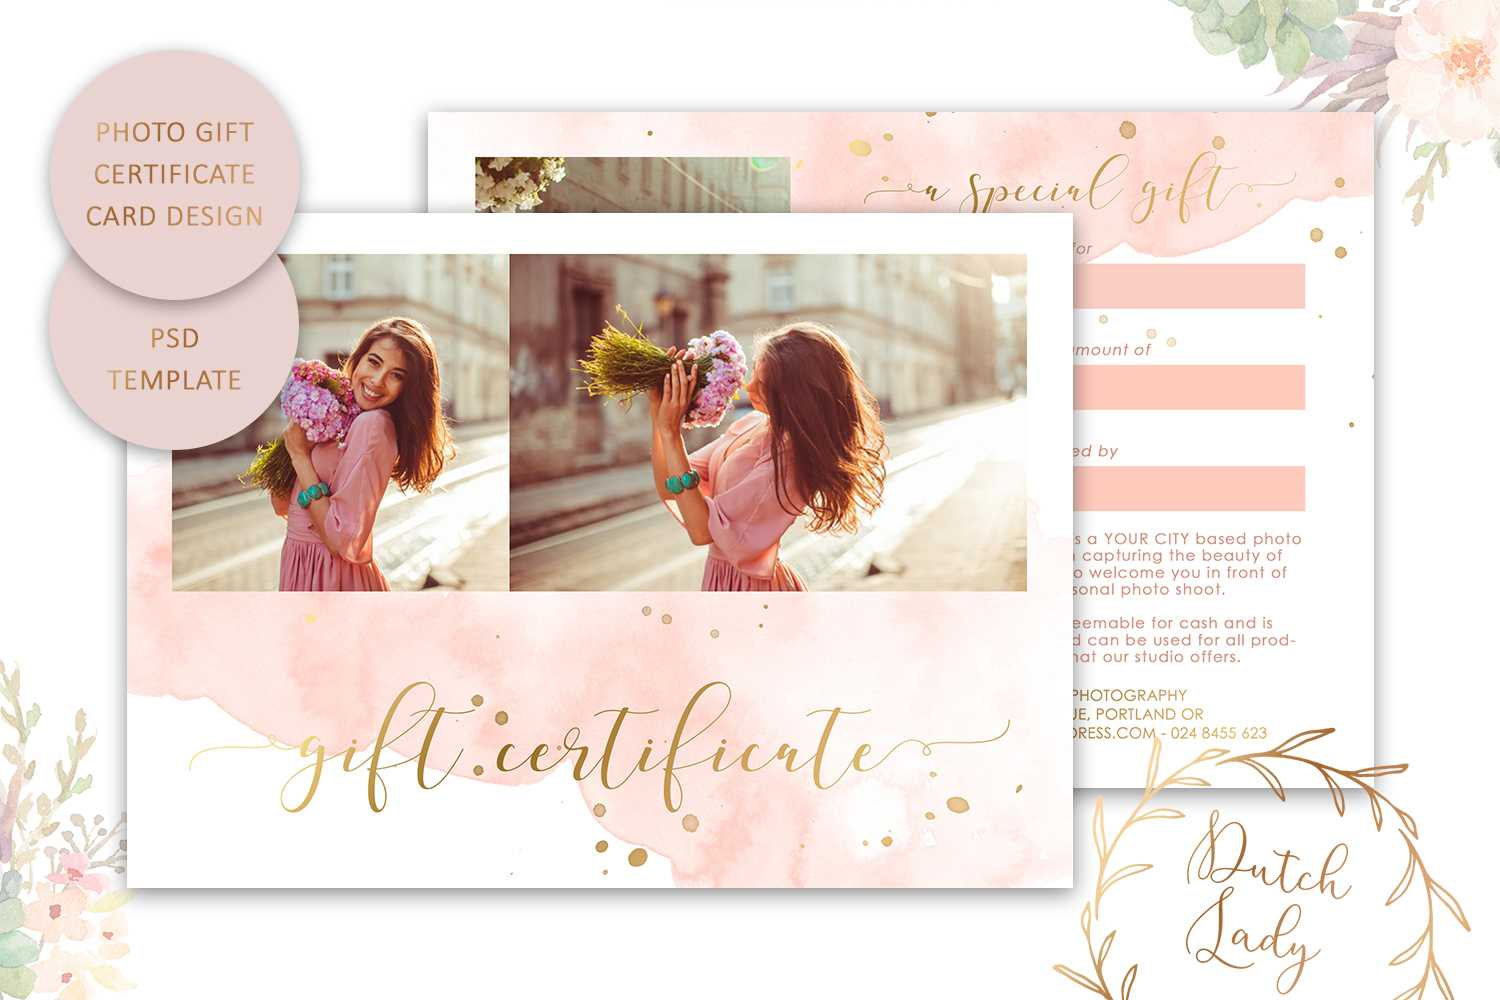 008 Template Ideas Photo Gift Card Photography Stirring Intended For Free Photography Gift Certificate Template